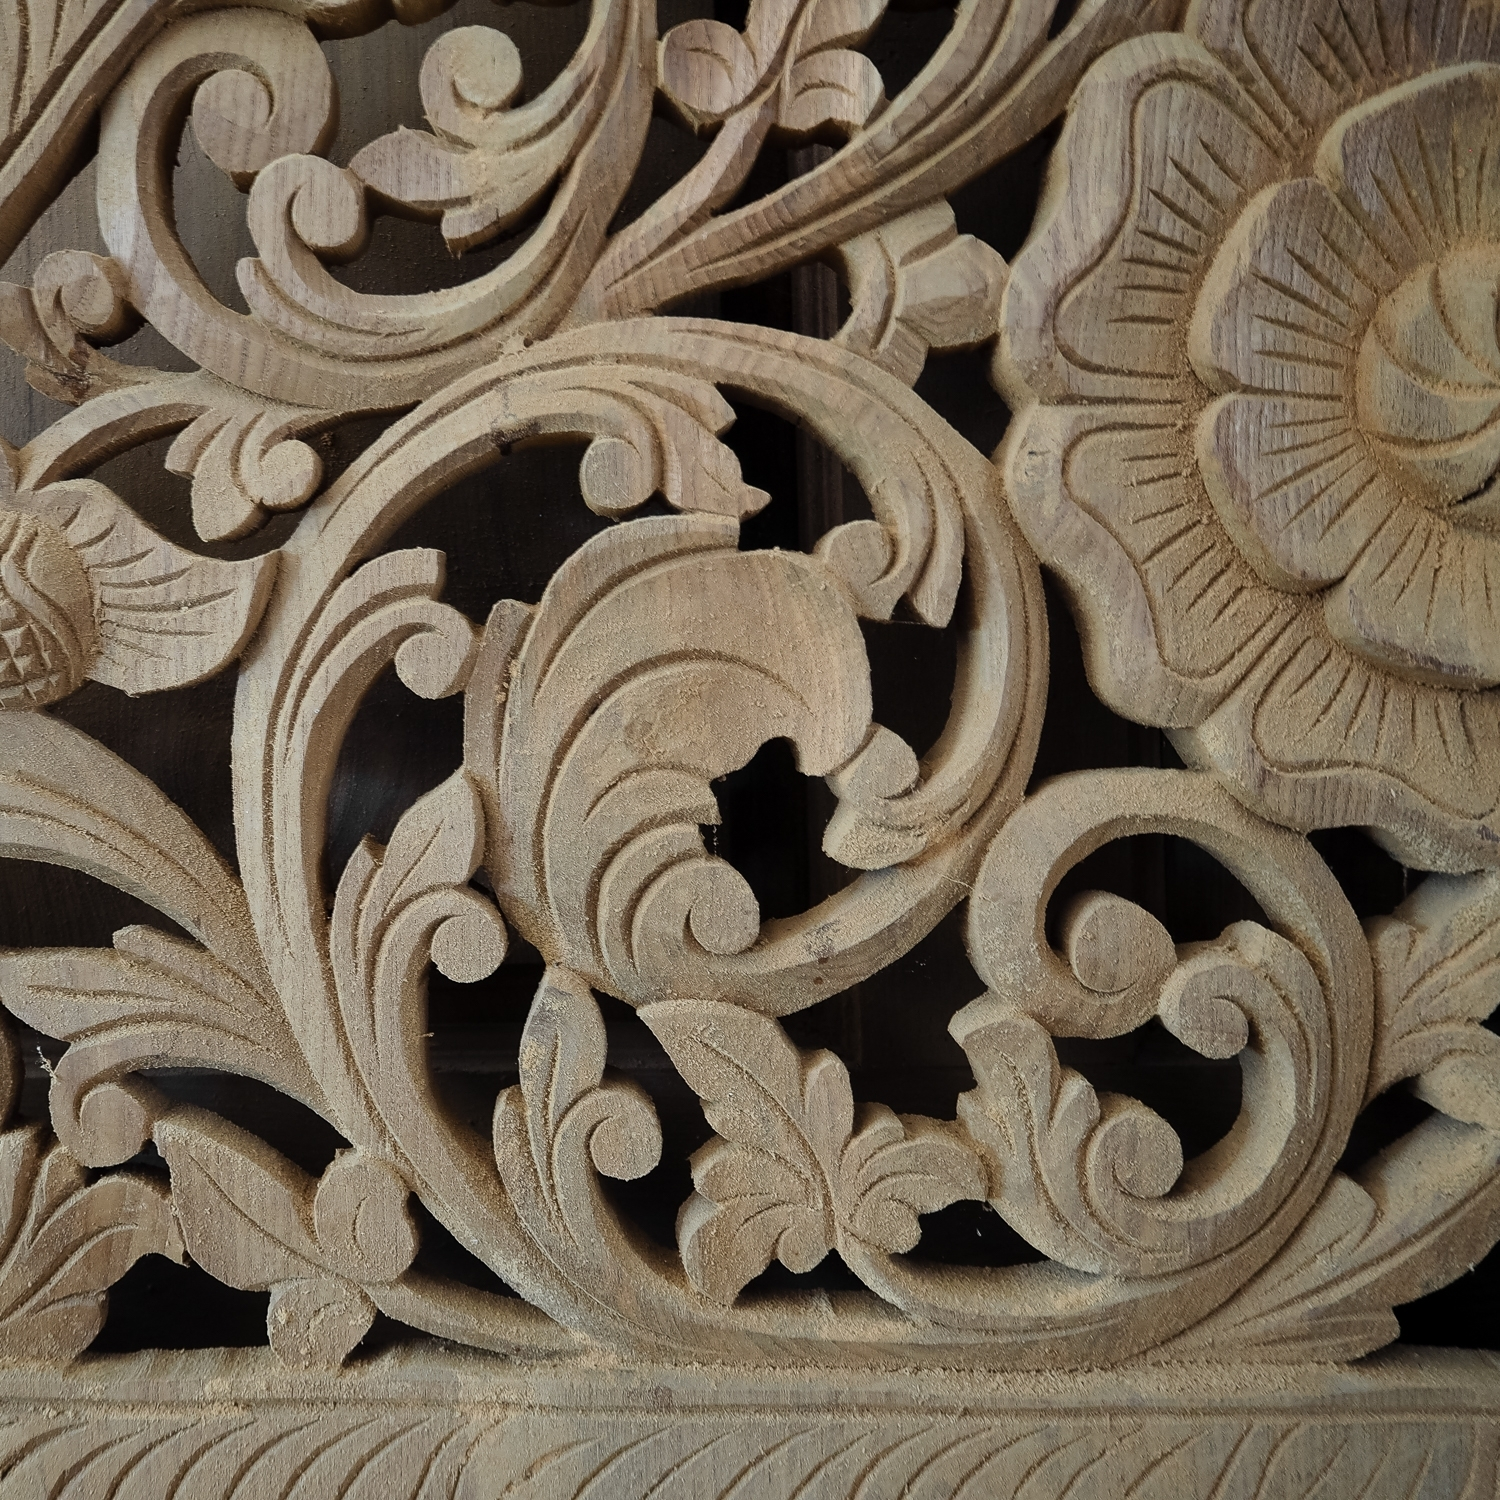 Buy Carved Bed Panel Oriental Wall Art Decor, Carved Wood Headboard Pertaining To Most Recently Released Oriental Wall Art (View 14 of 20)